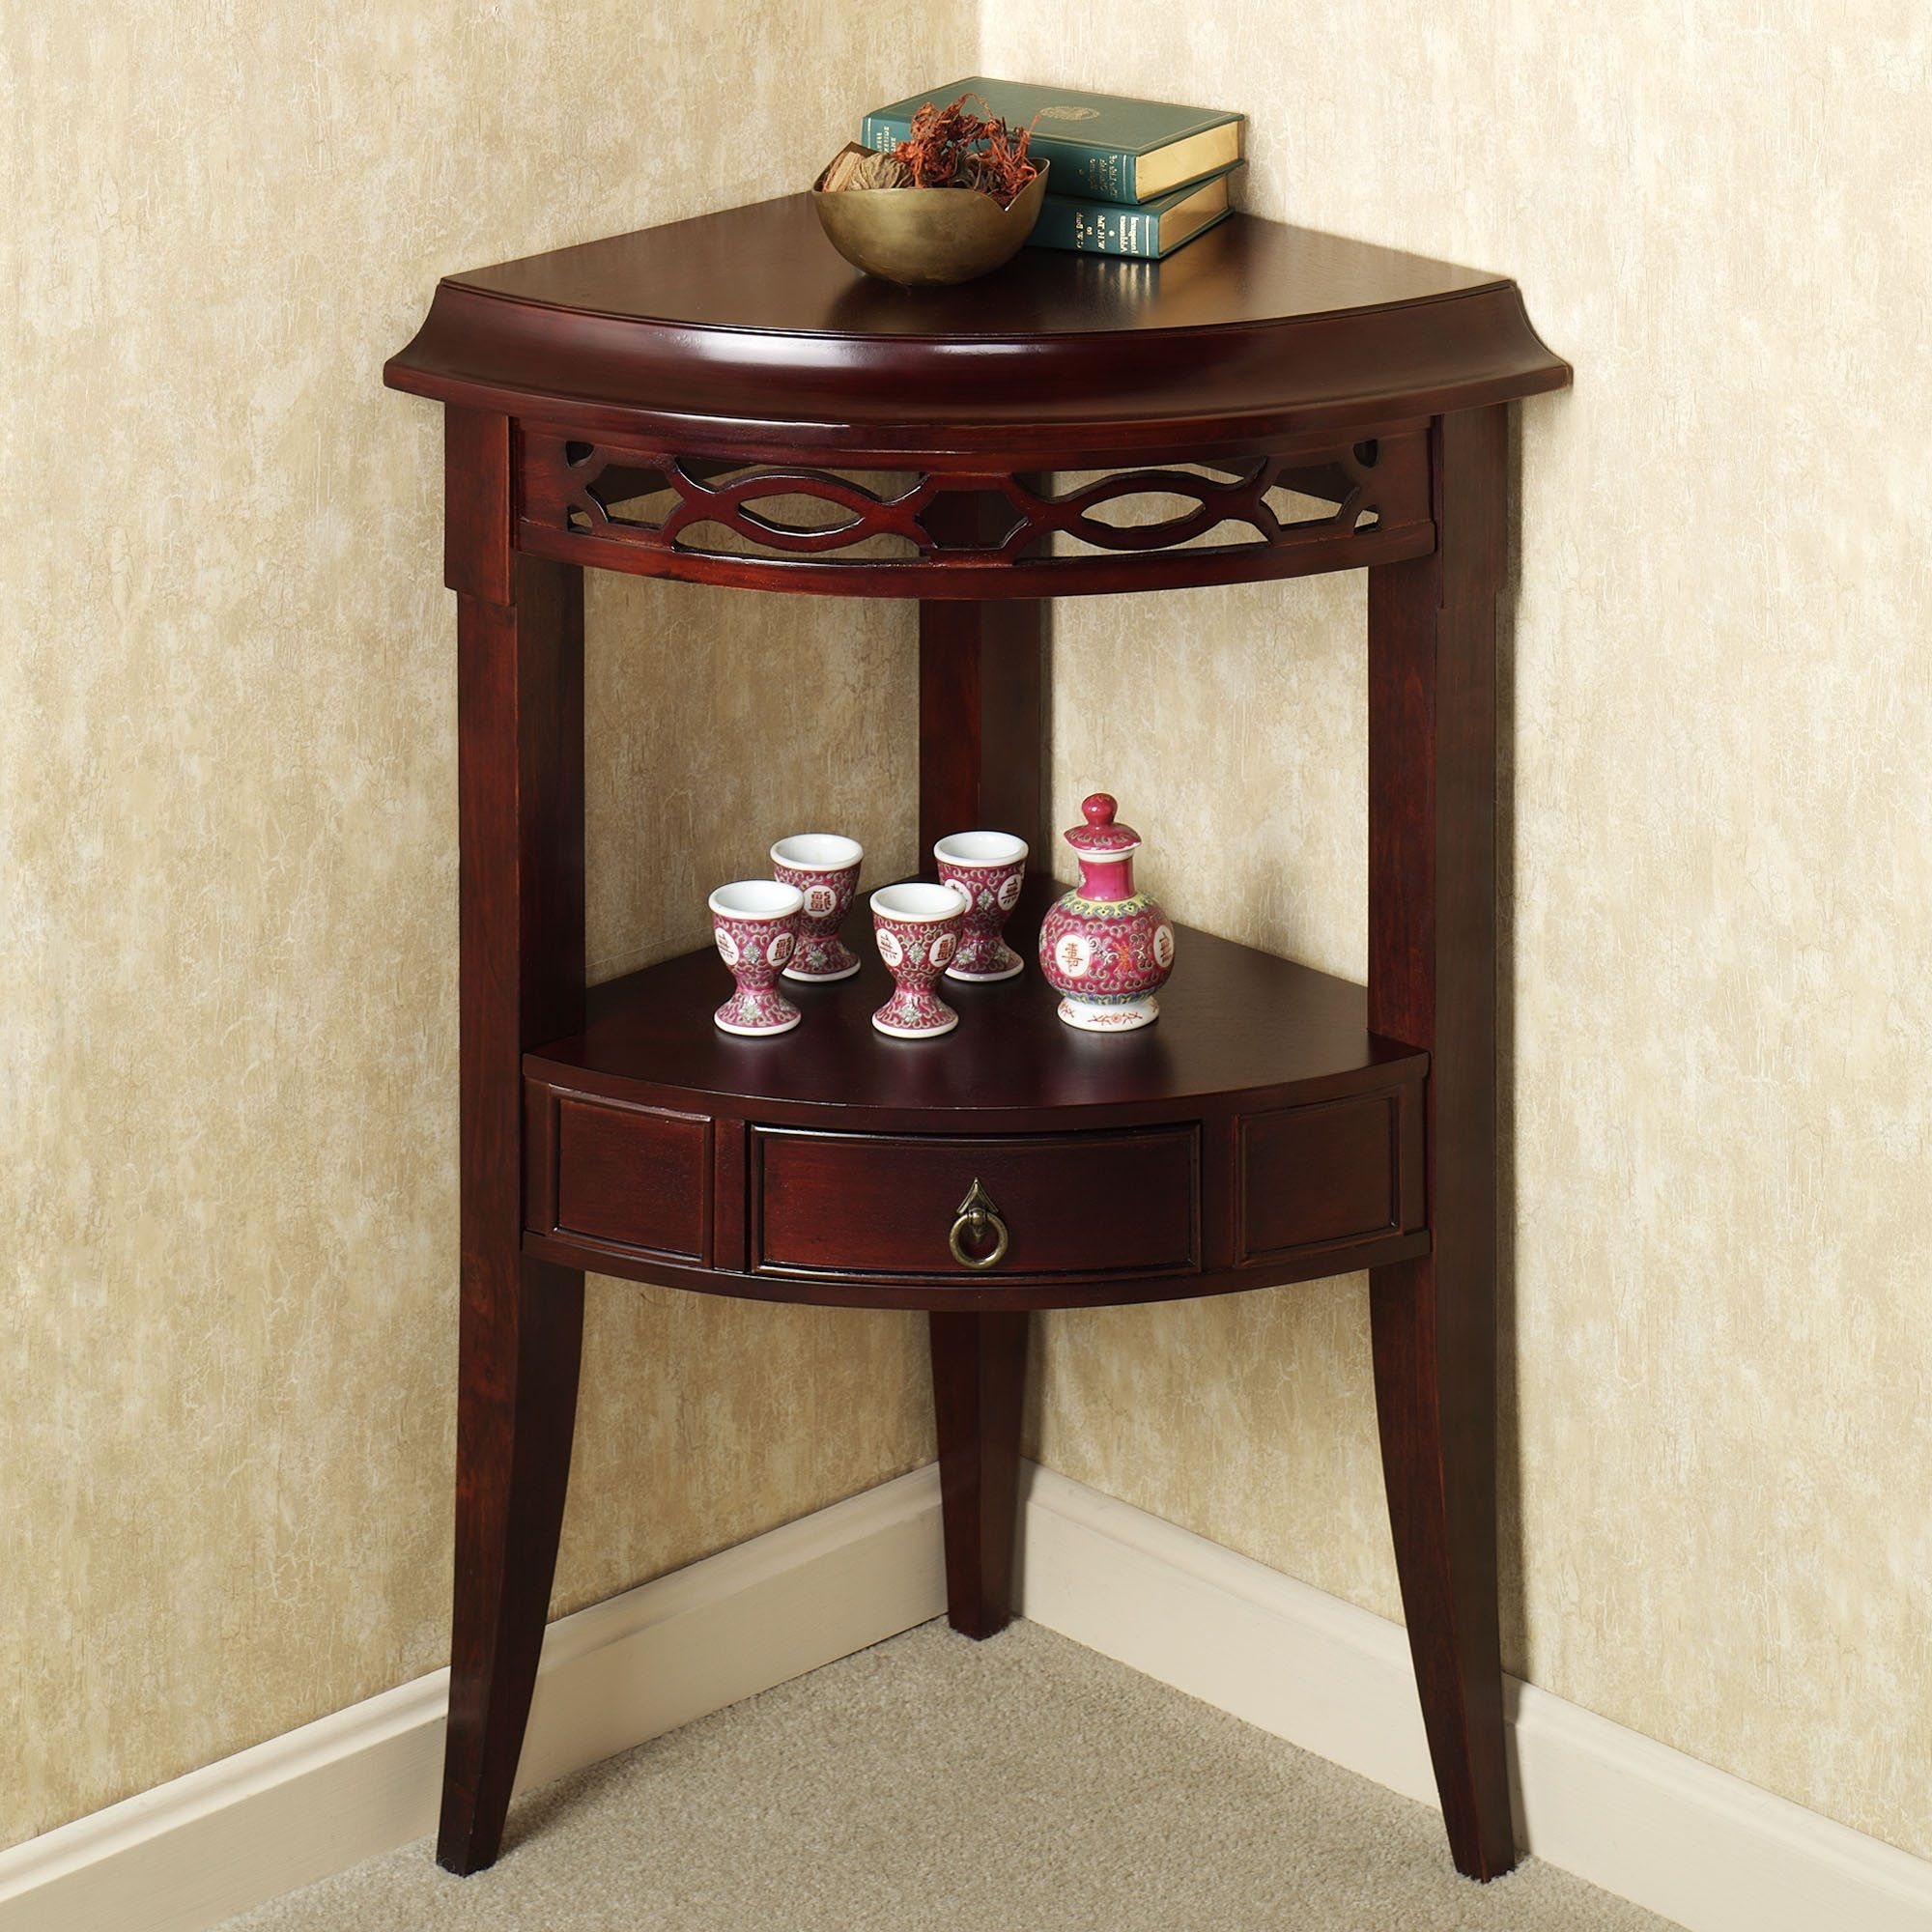 Fascinating Small Corner Table Accent Table Decor Decor Corner Accent Table